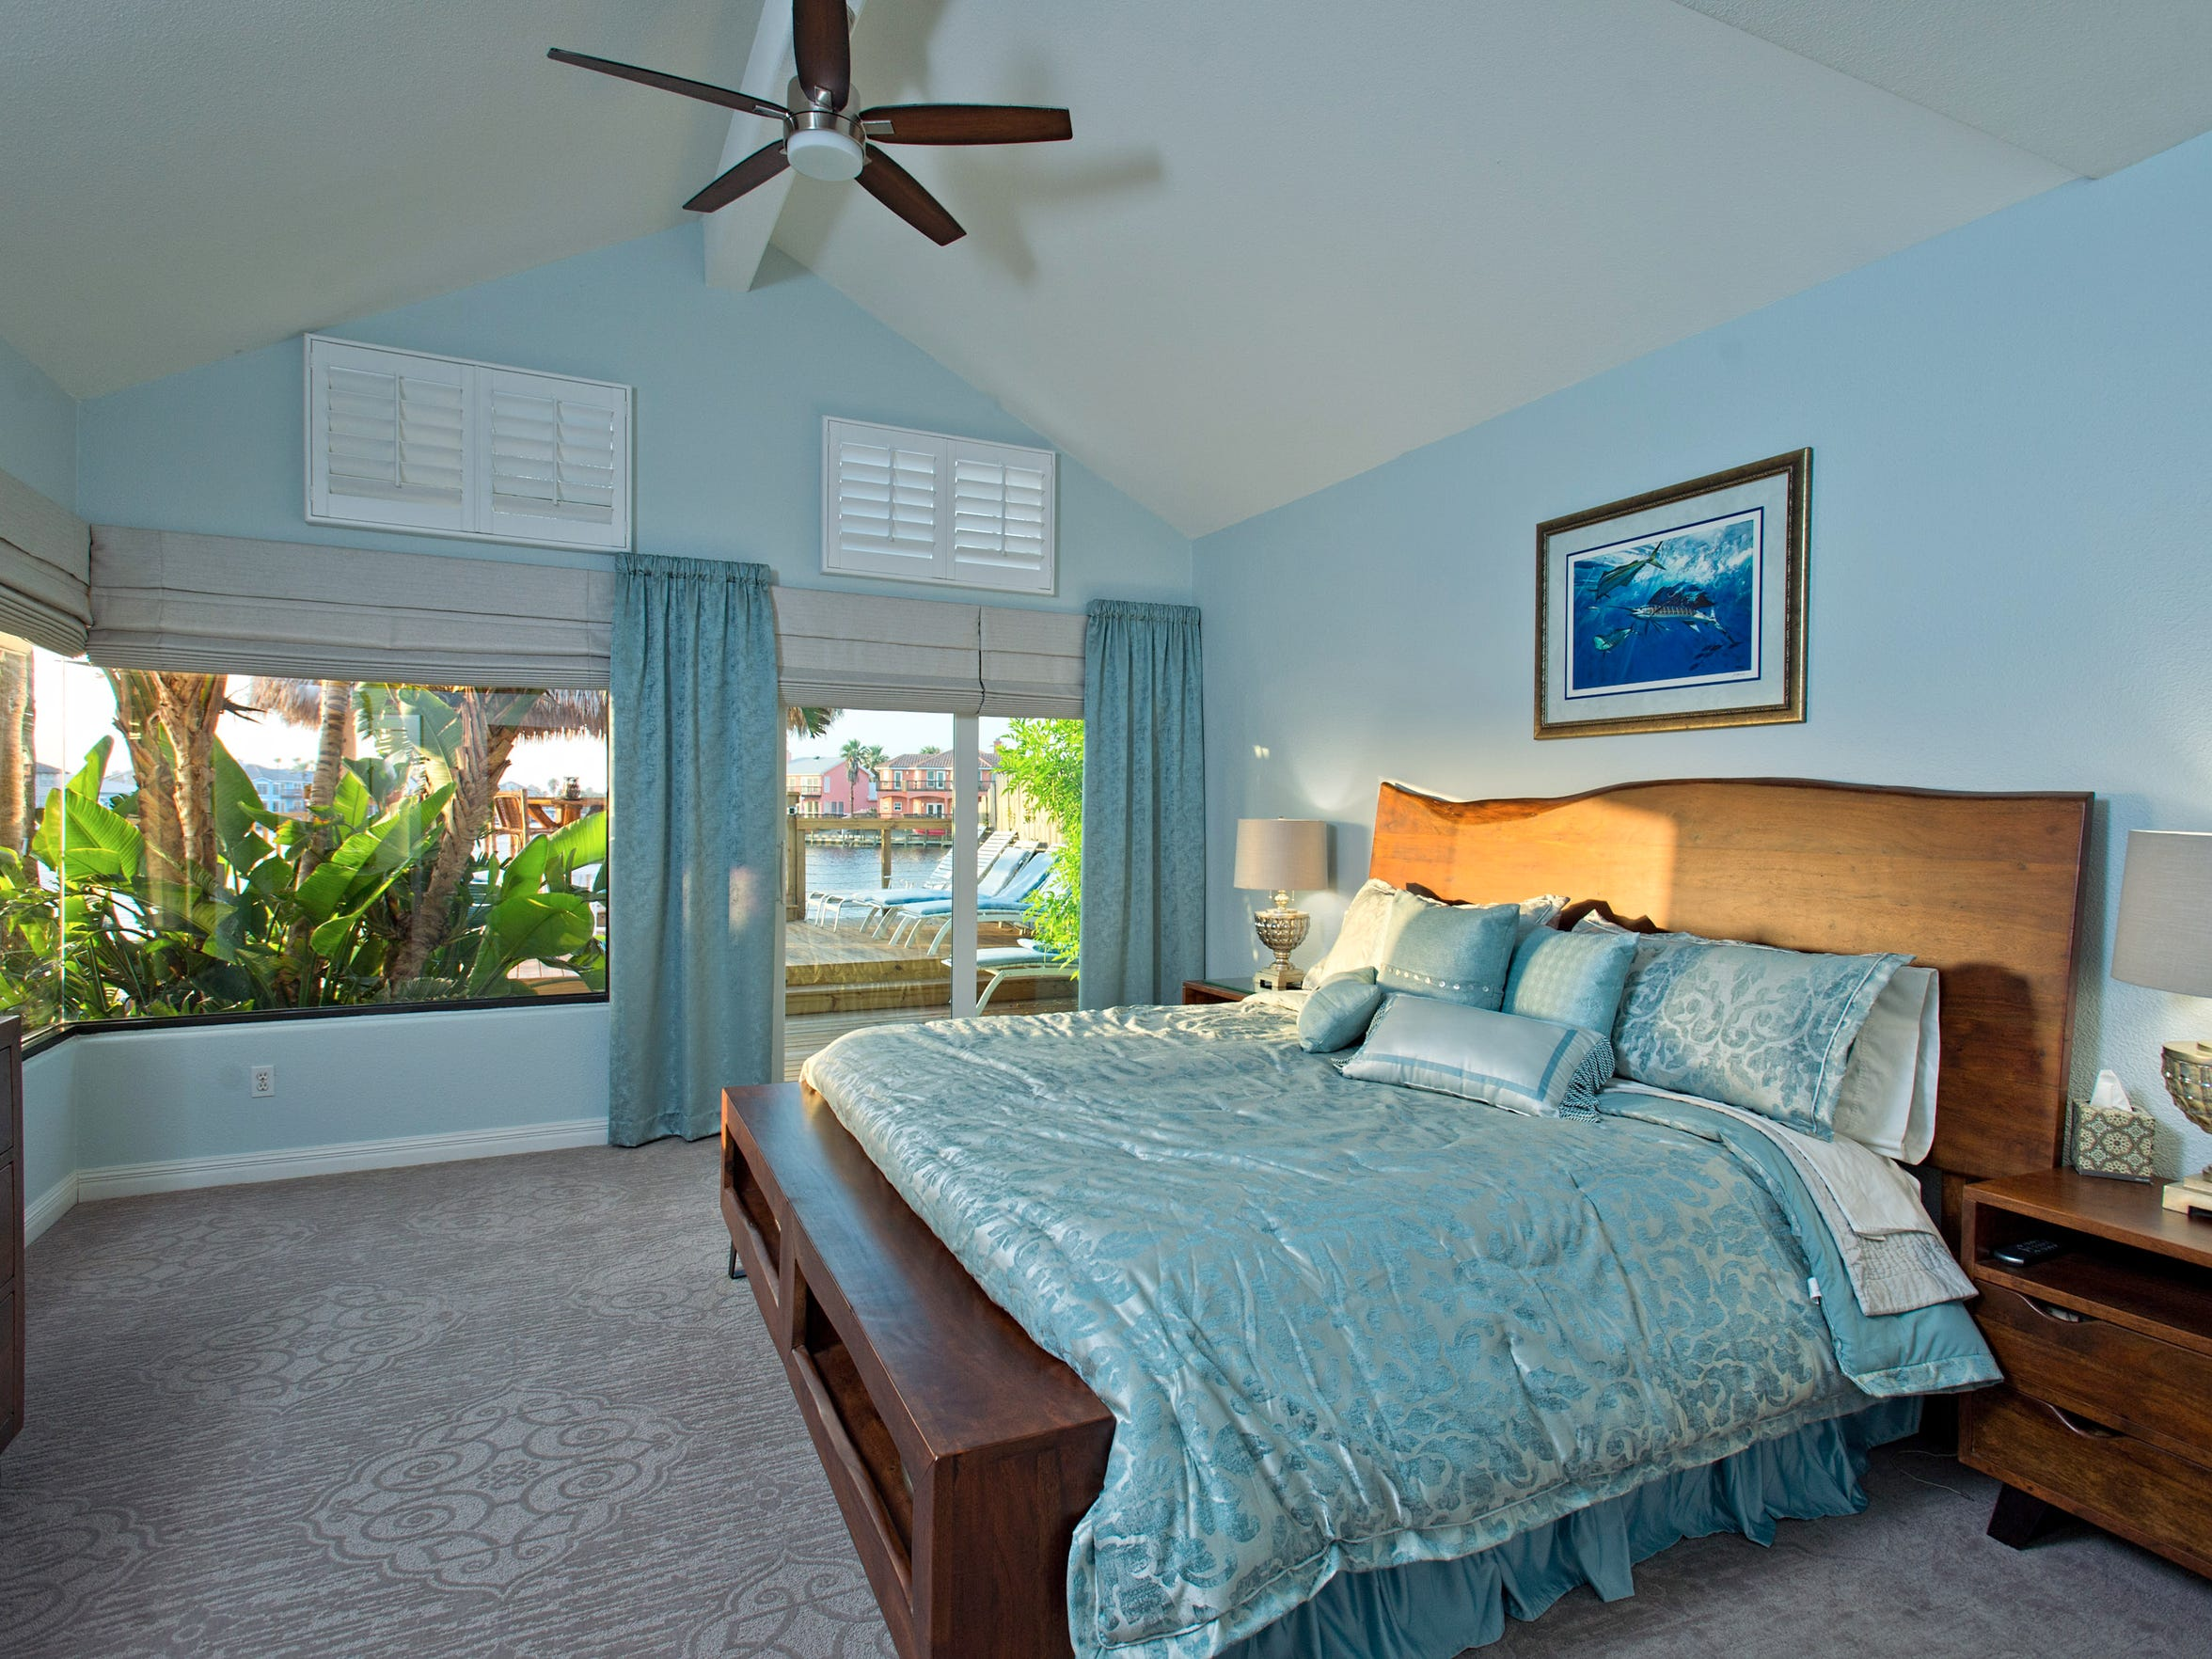 The spacious first floor master bedroom takes in water views from a set of sliding doors and a unique corner window and features a vaulted ceiling